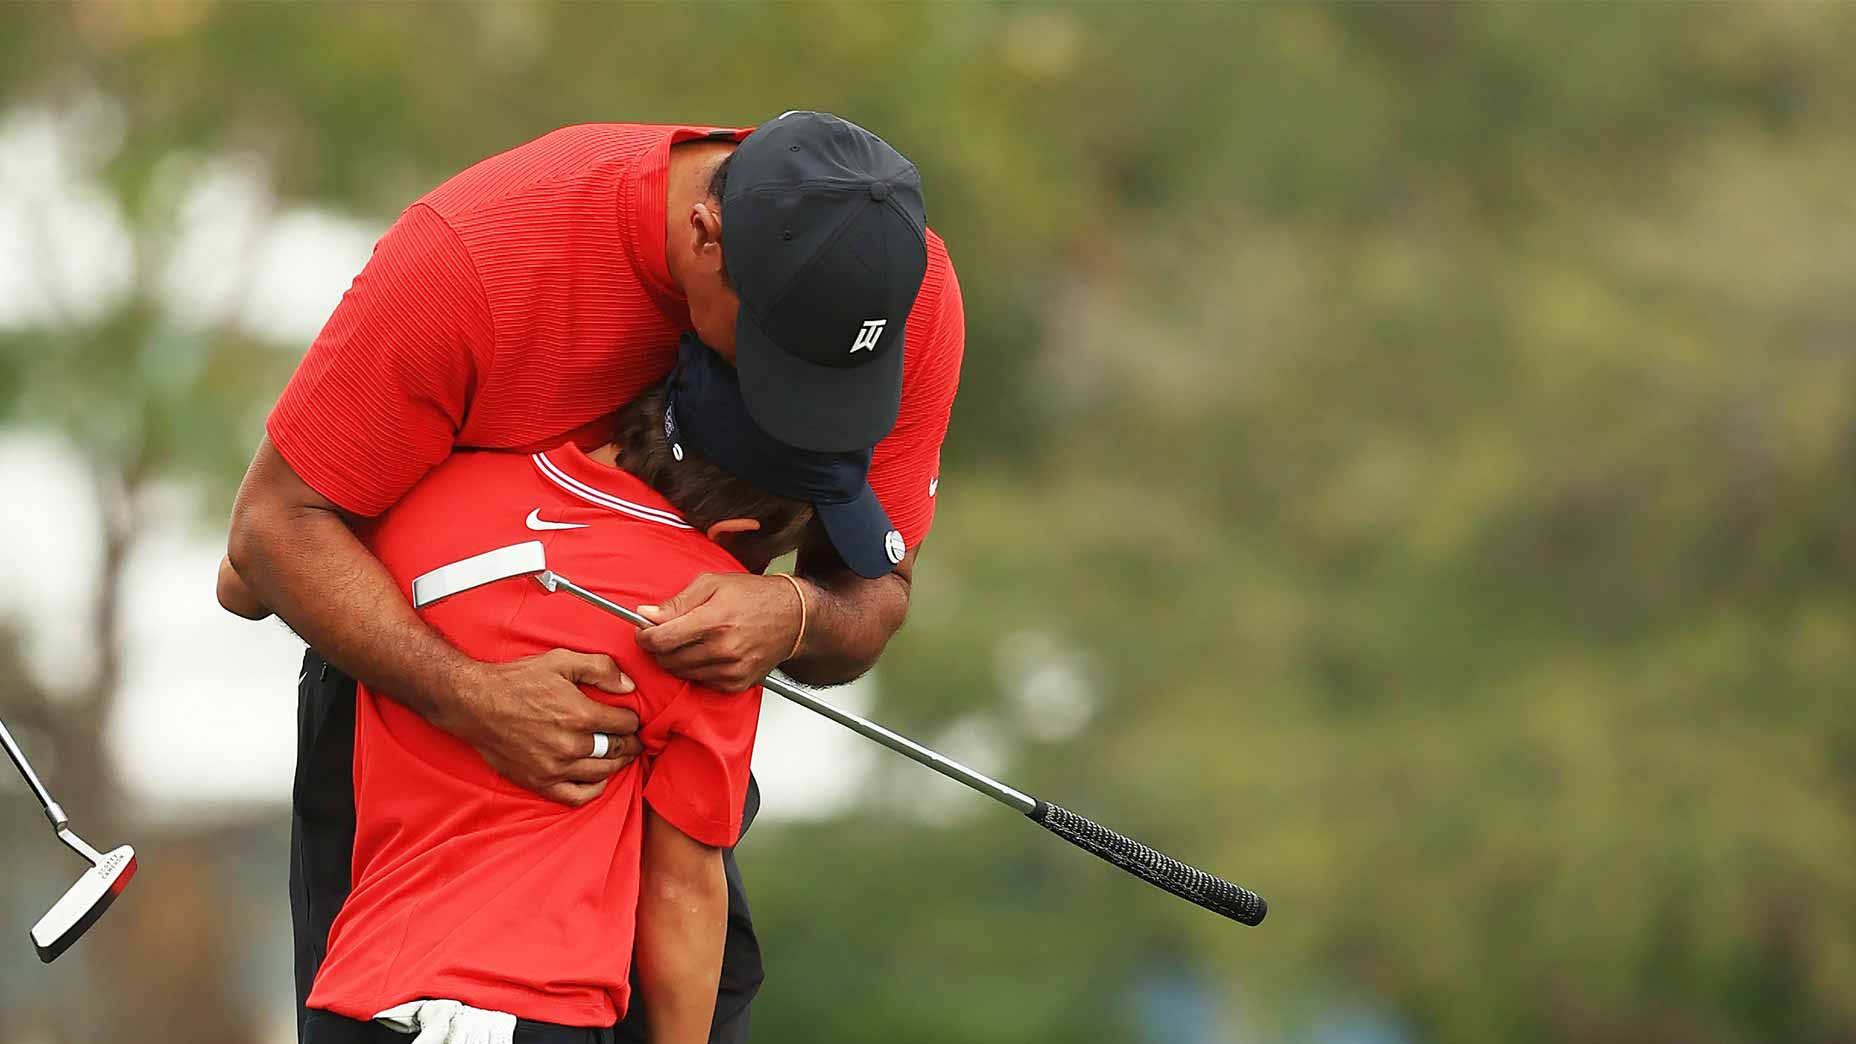 'I'm so proud': Emotional Tiger Woods reflects on weekend with Charlie